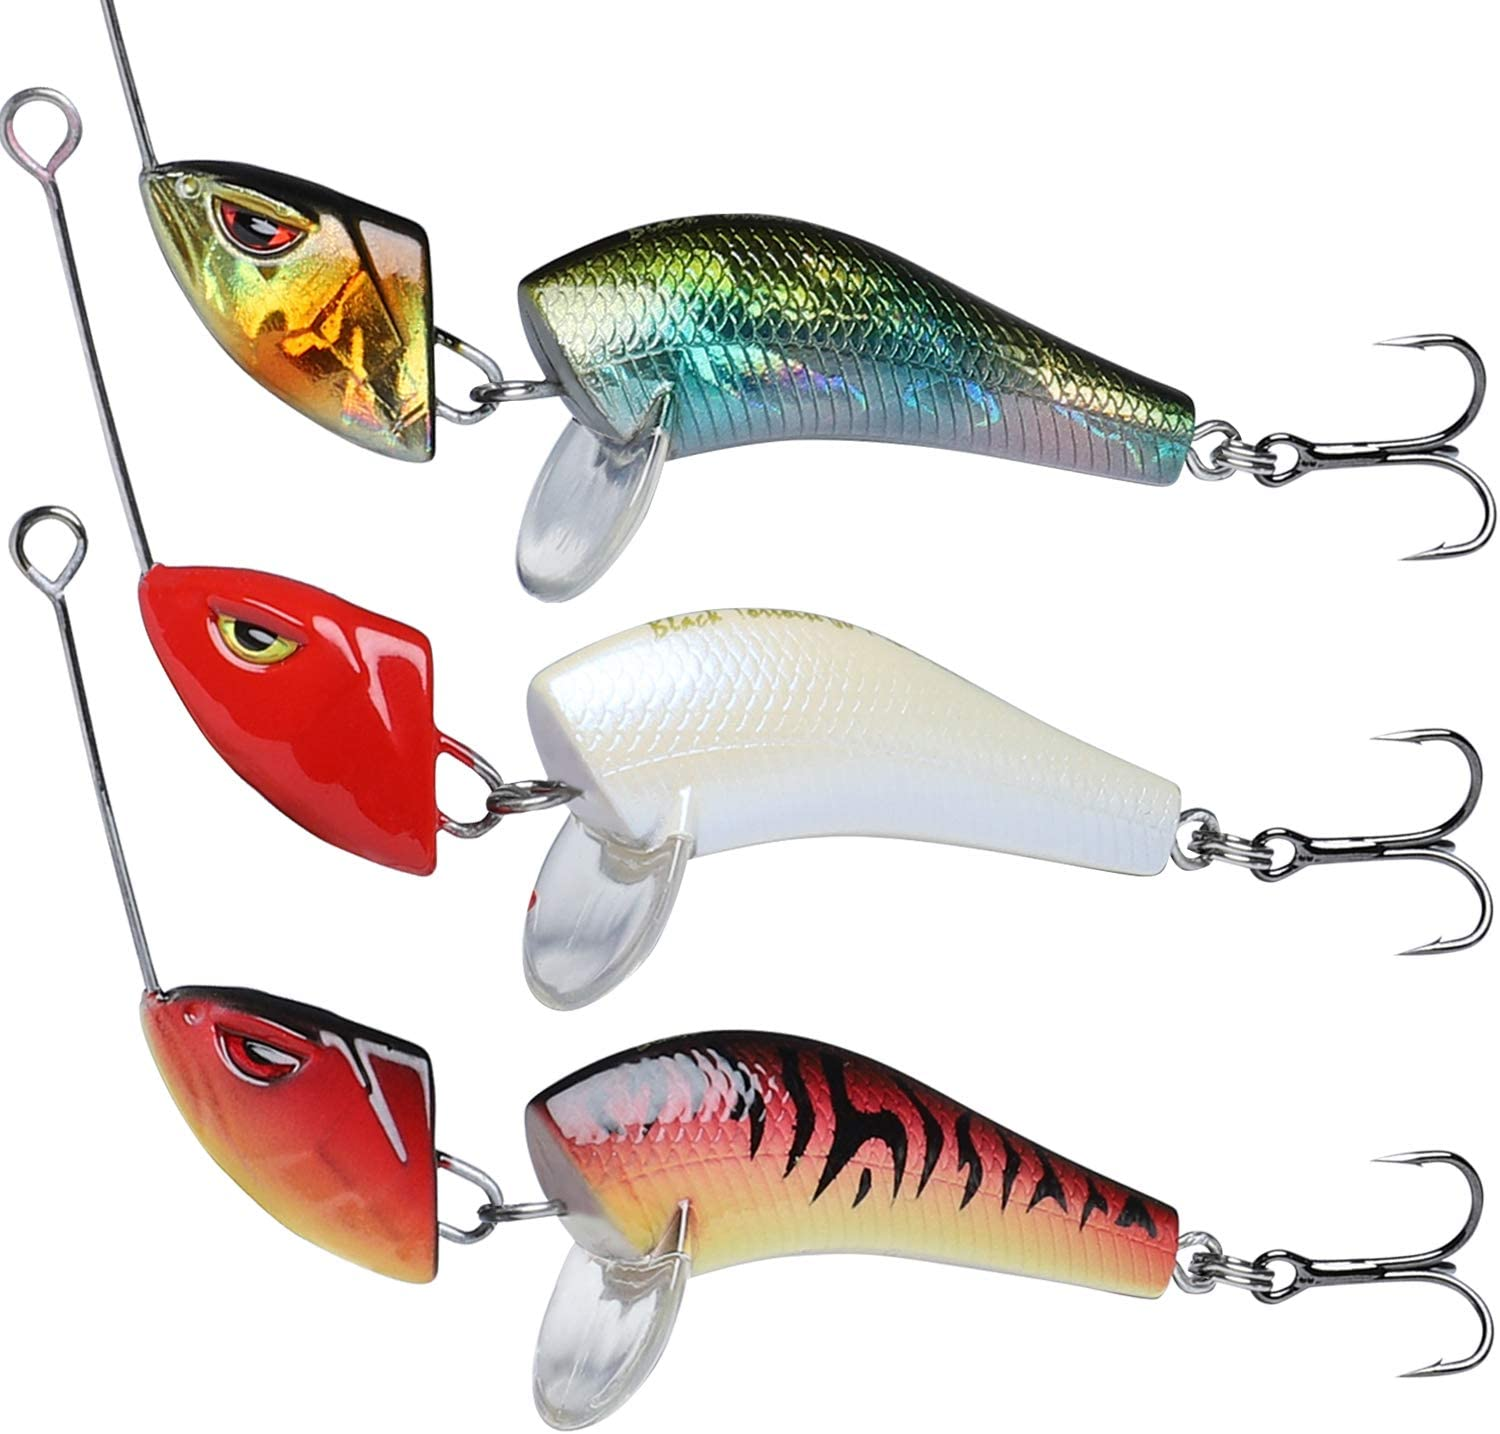 Fishing Lures for Bass Trout Segmented Multi Jointed Swimbaits